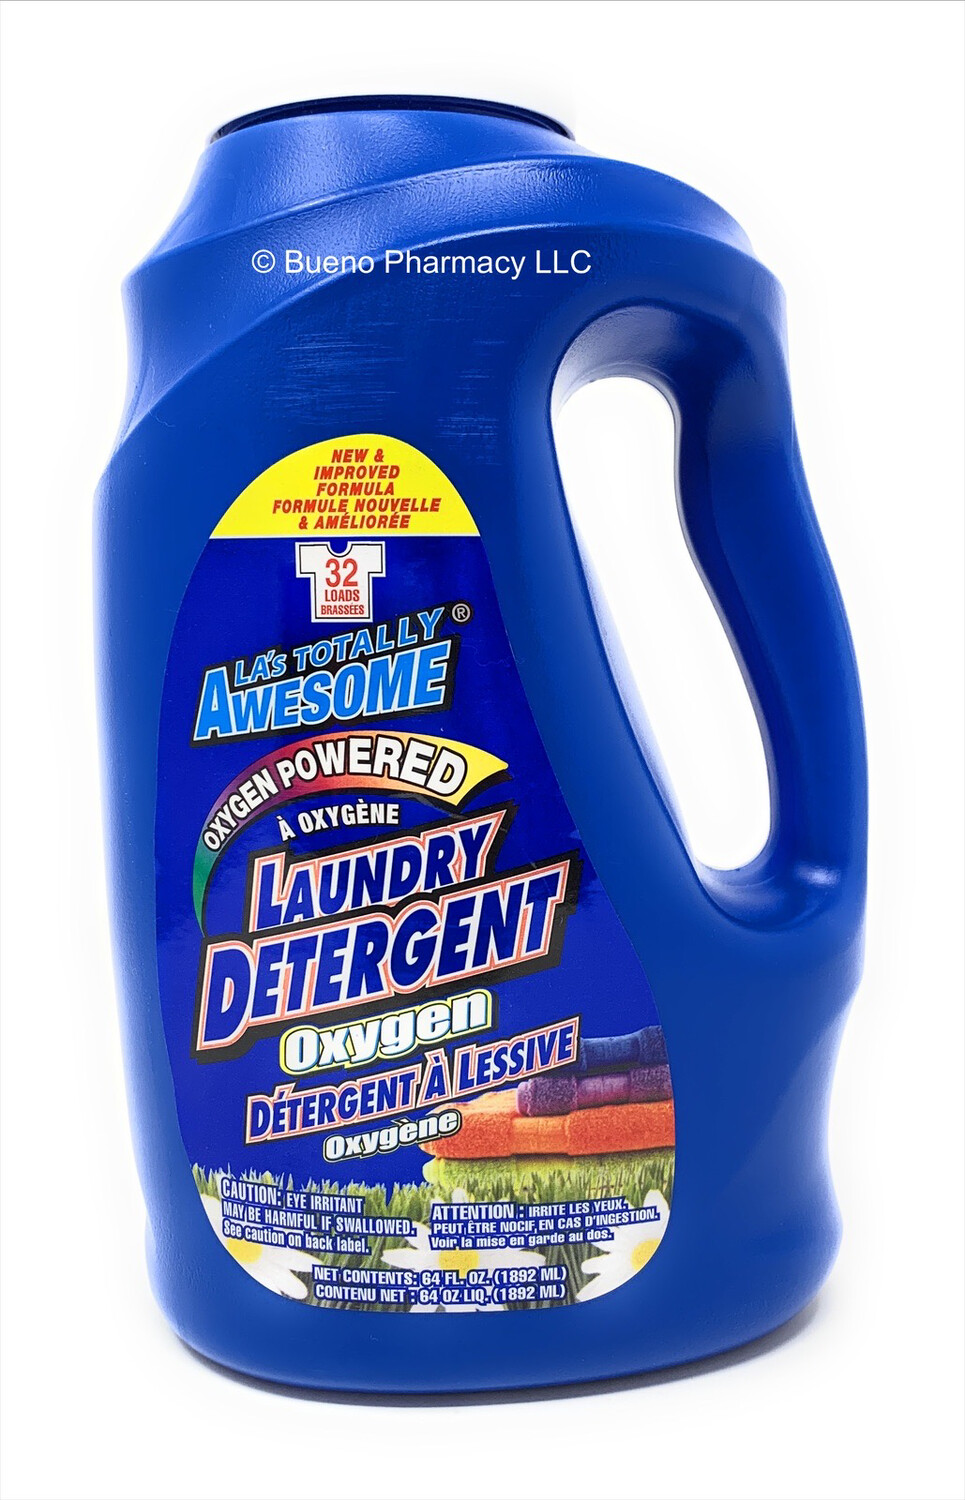 Awesome Laundry Detergent (Oxygen)